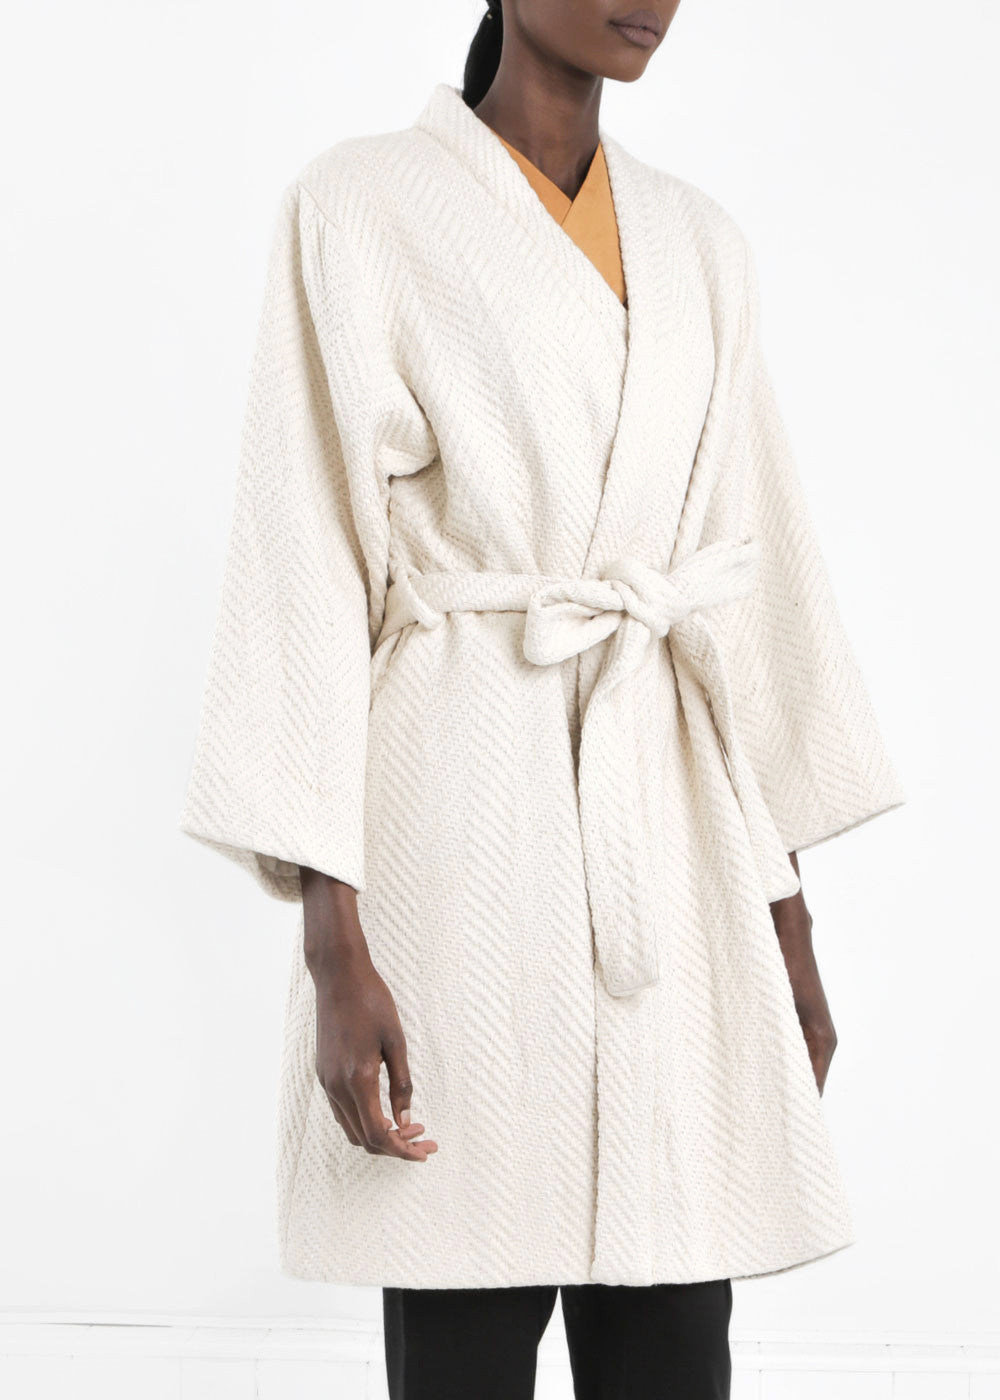 WRAY Natural Mantle Robe Coat — Shop sustainable fashion and slow fashion at New Classics Studios